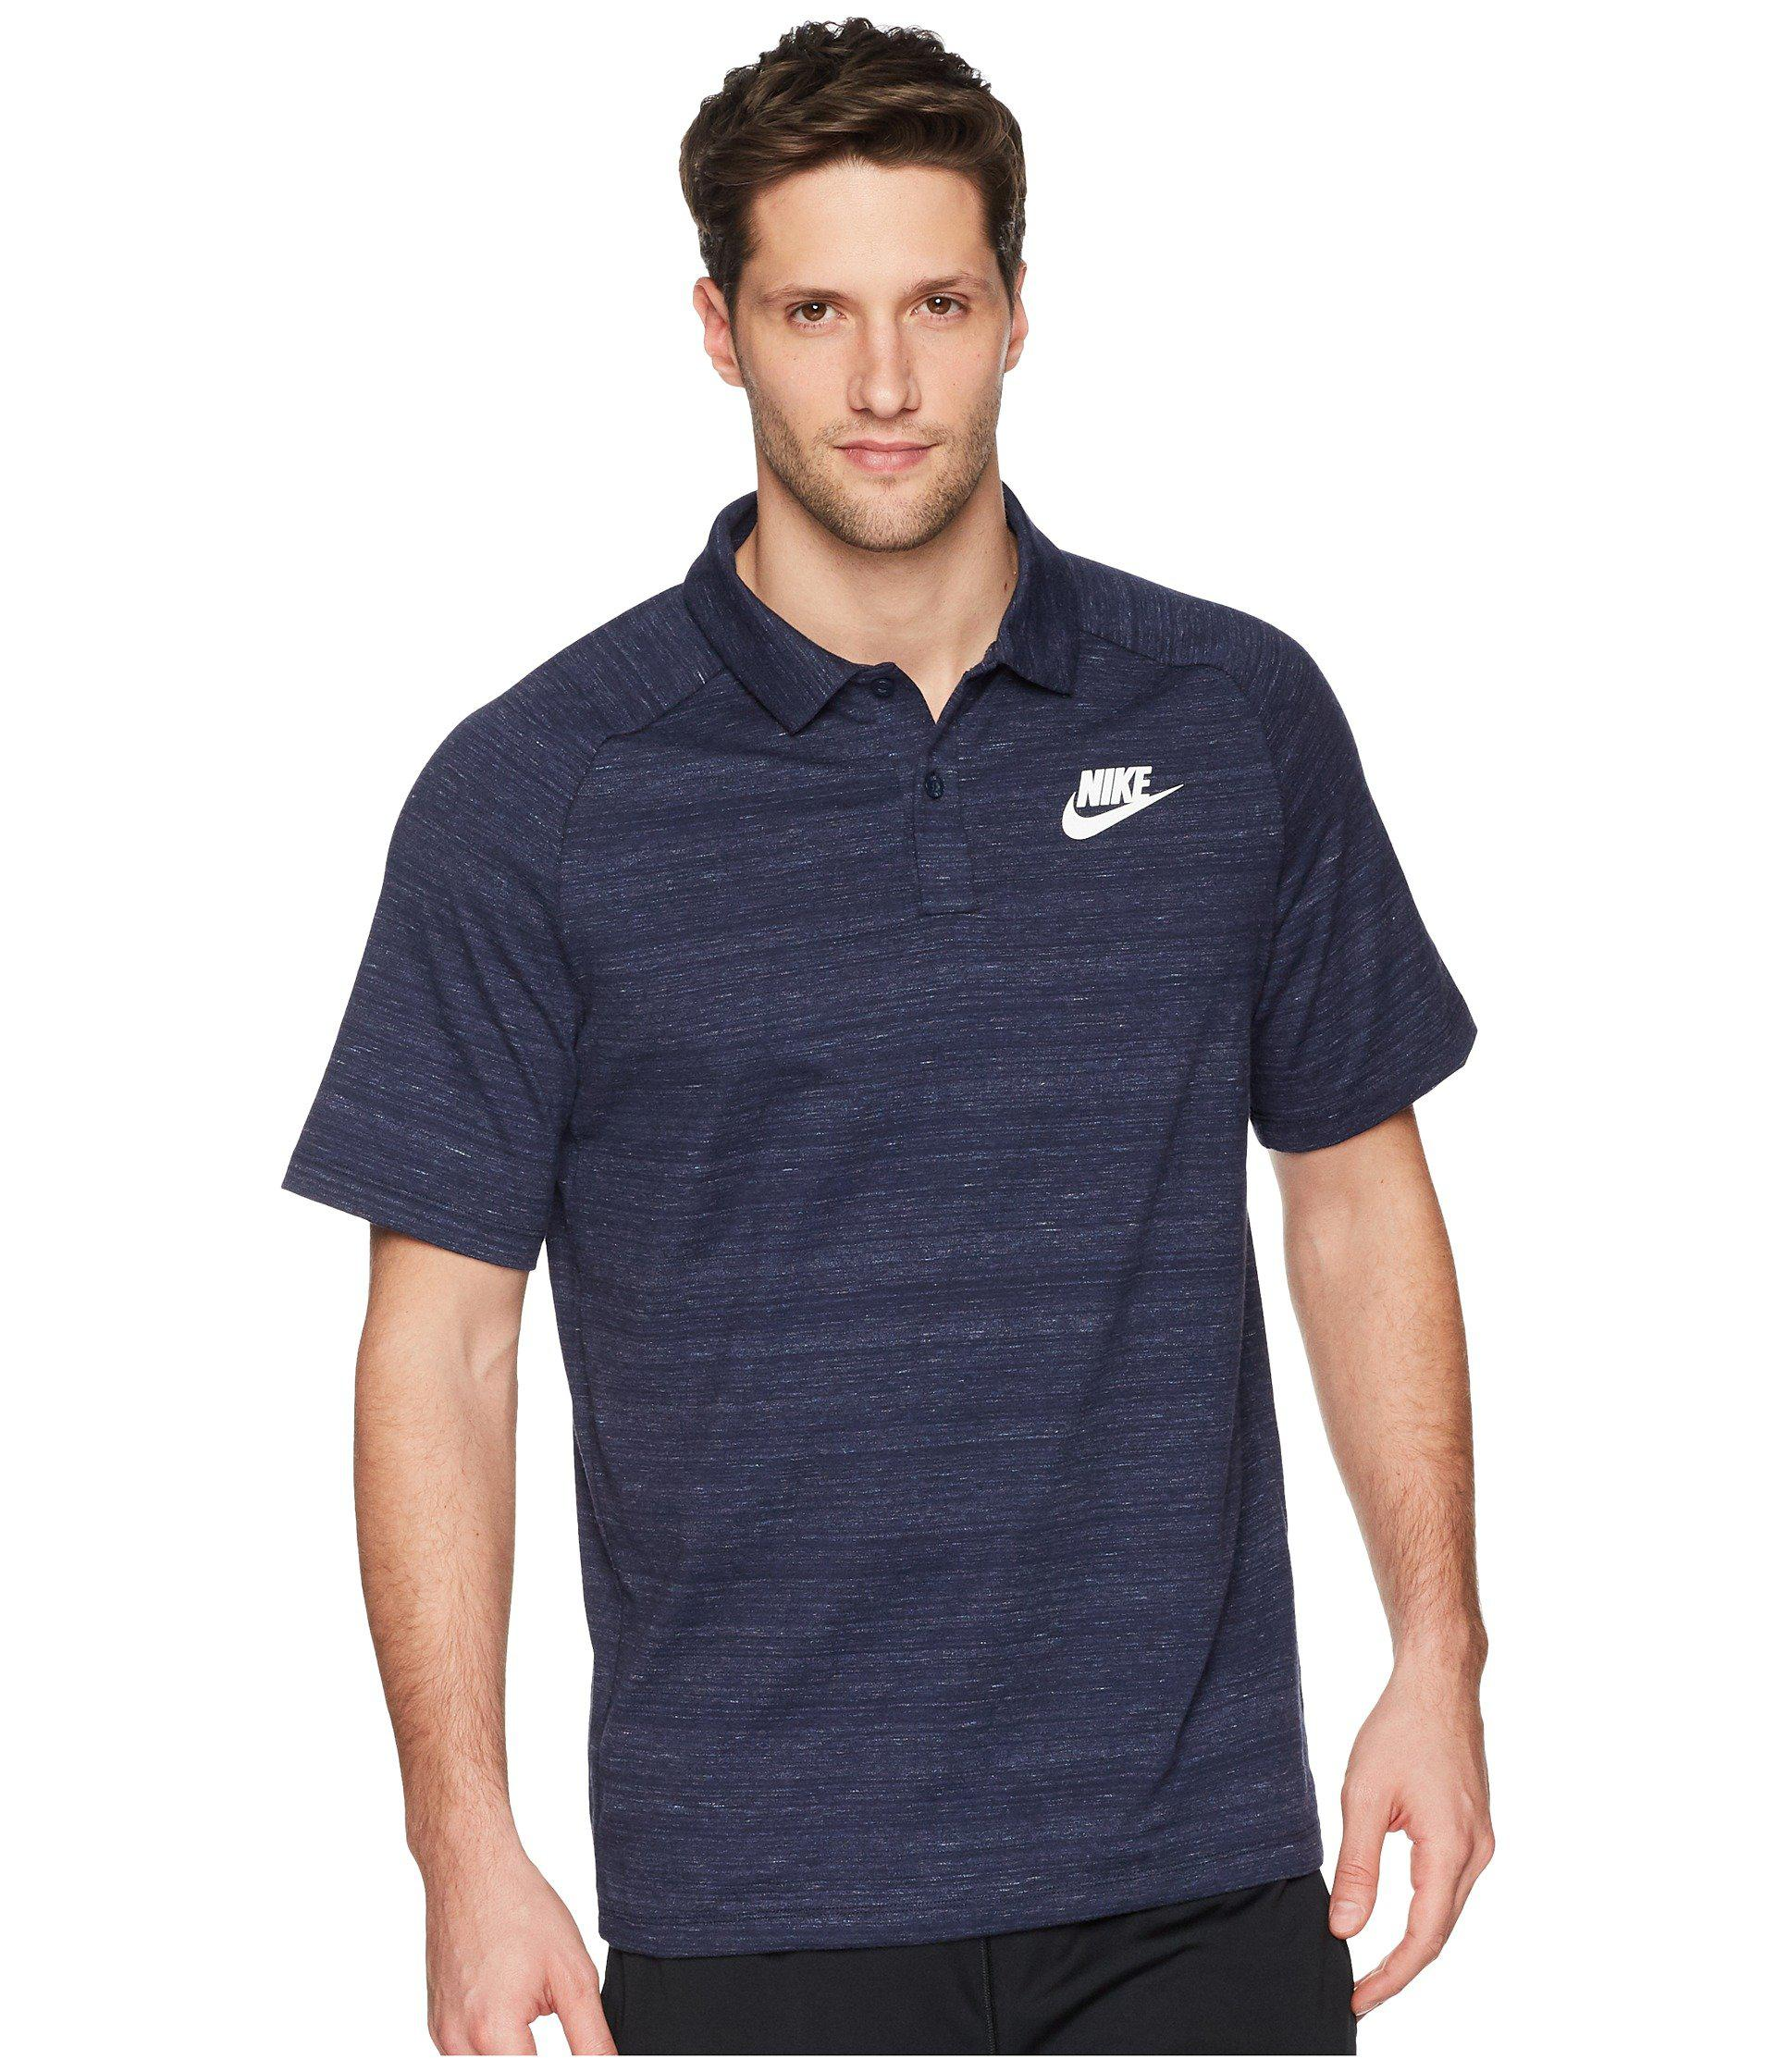 4c143f688a46 Lyst - Nike Nsw Av15 Polo Knit in Blue for Men - Save 5%